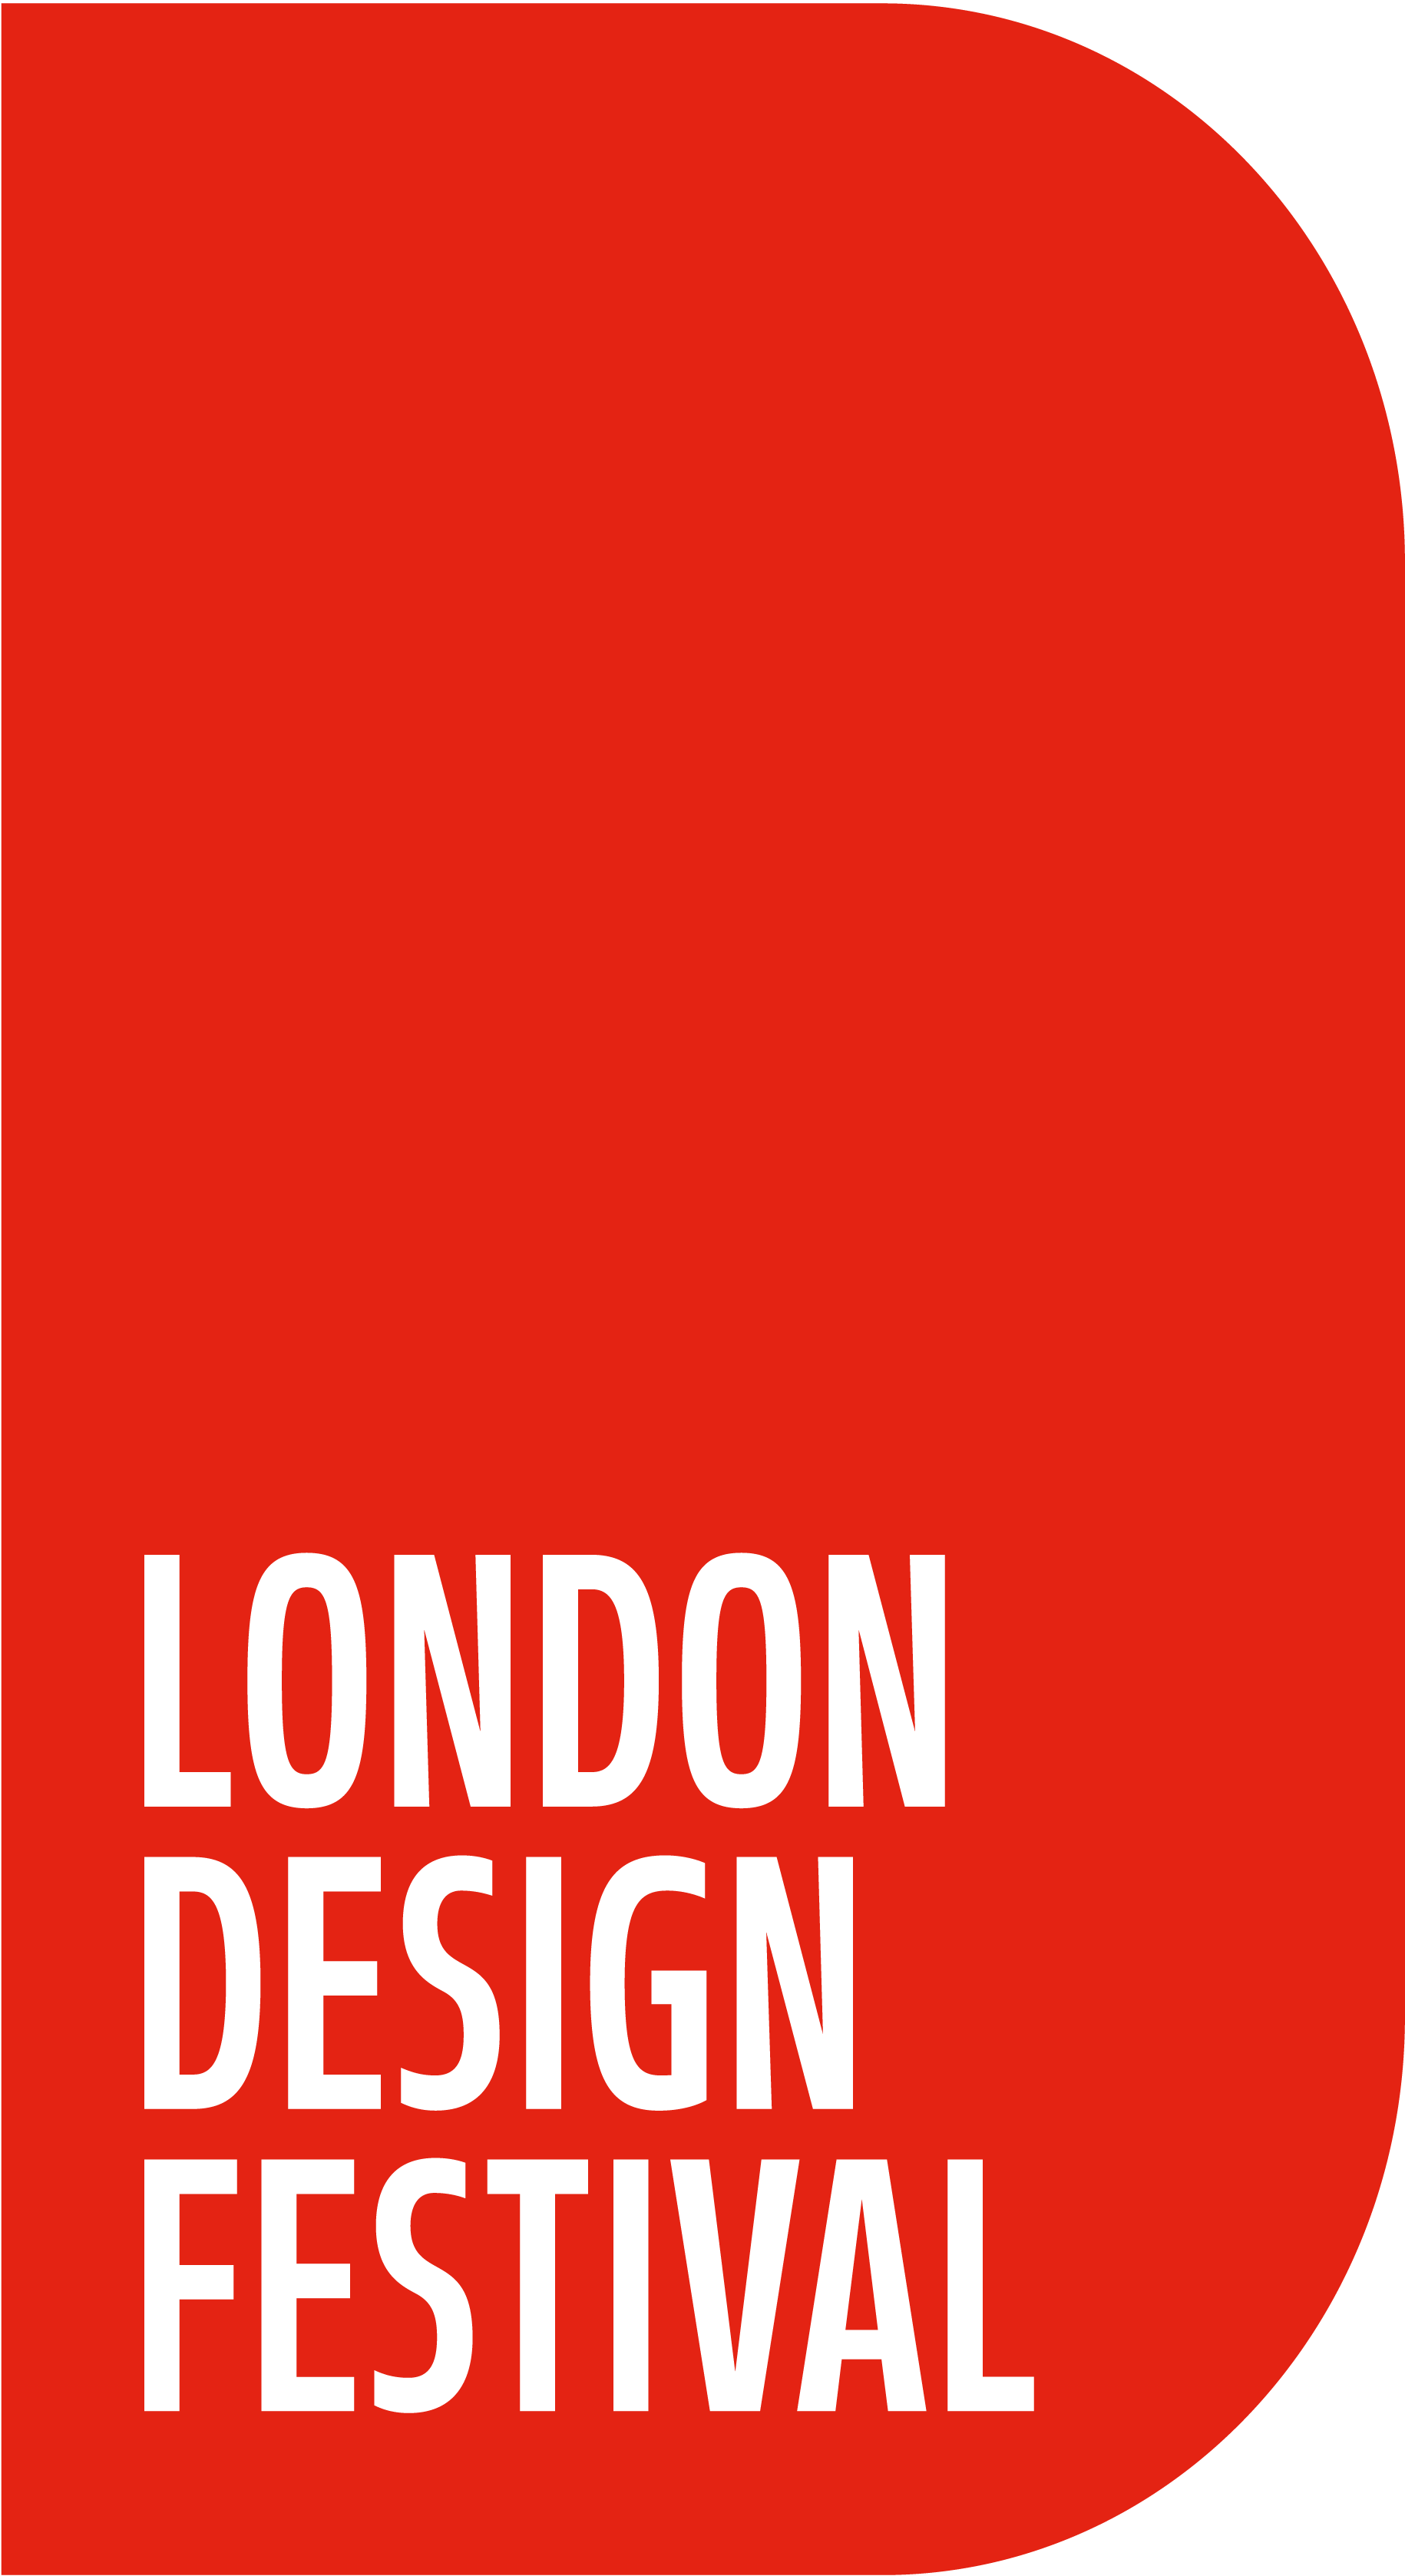 London design festival photo